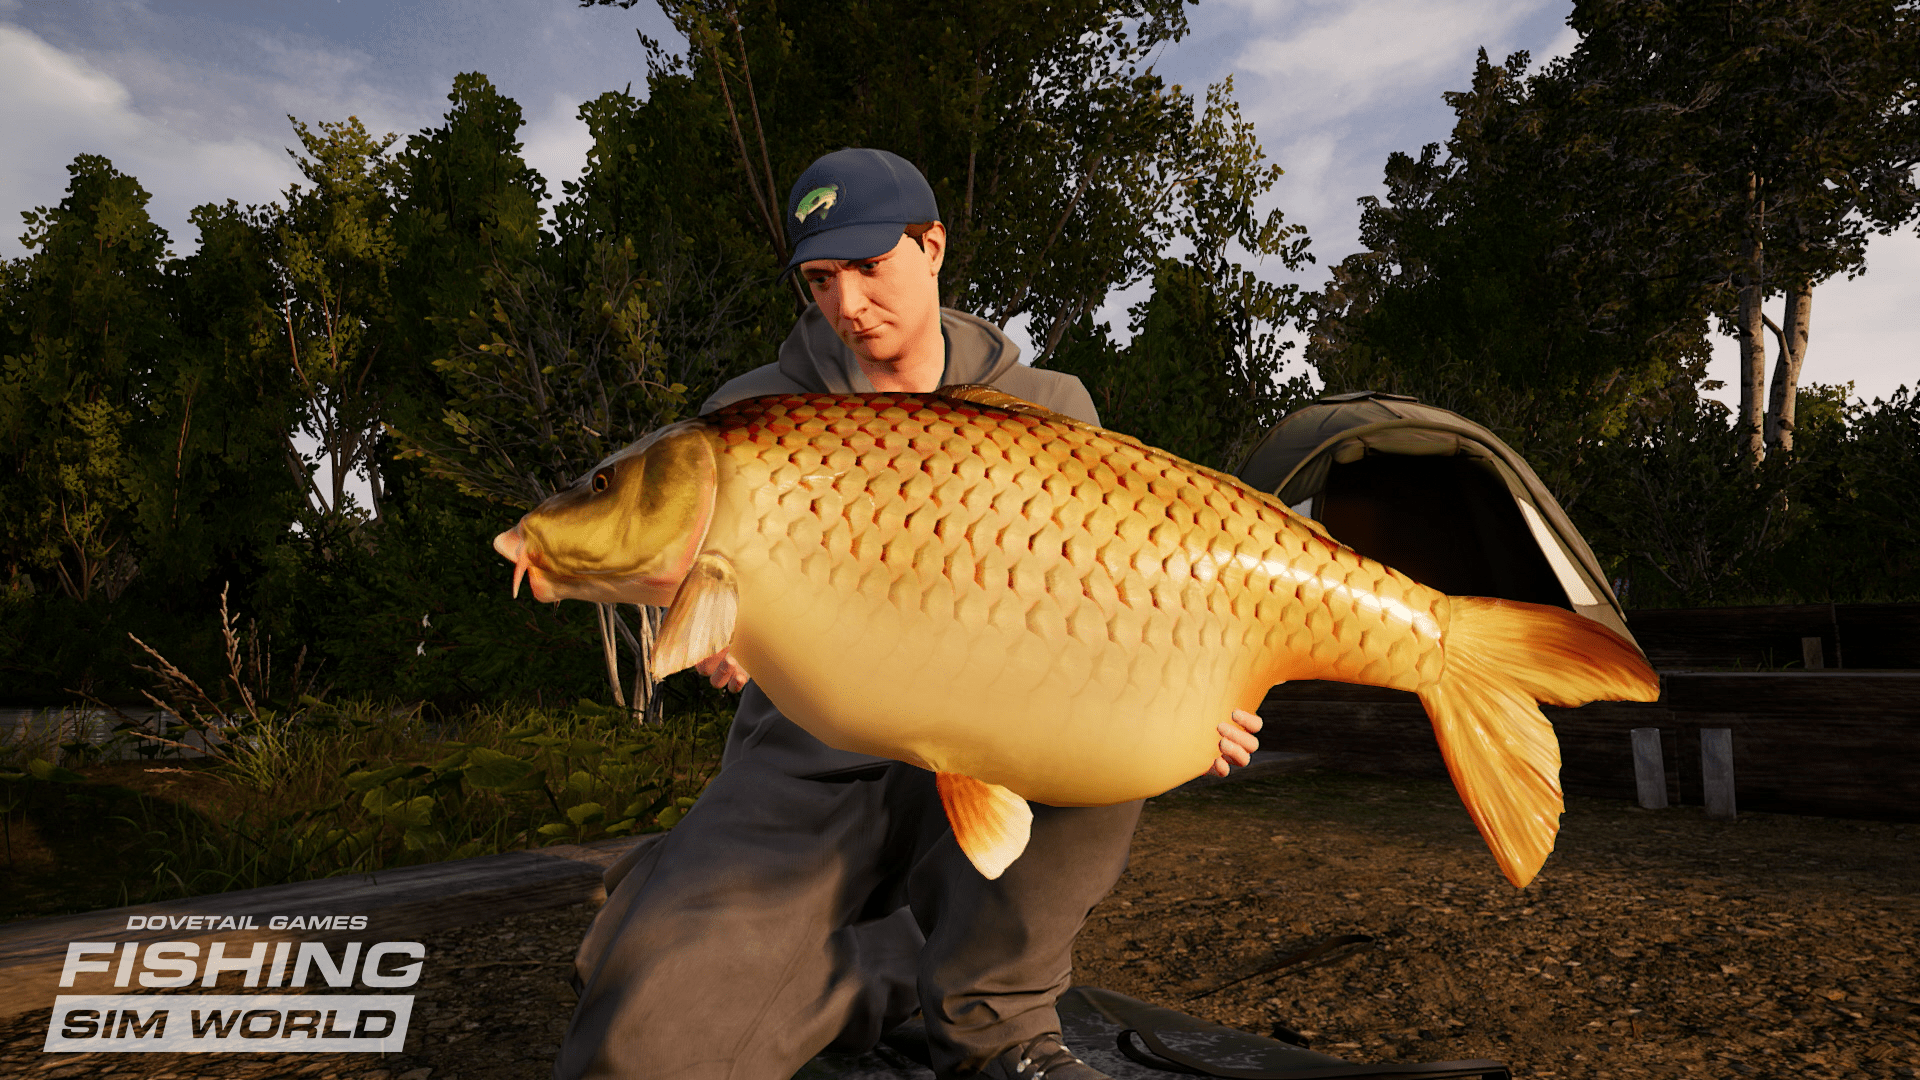 2---Immaculate-Common-Carp---Fishing-Sim-World--Watermark-